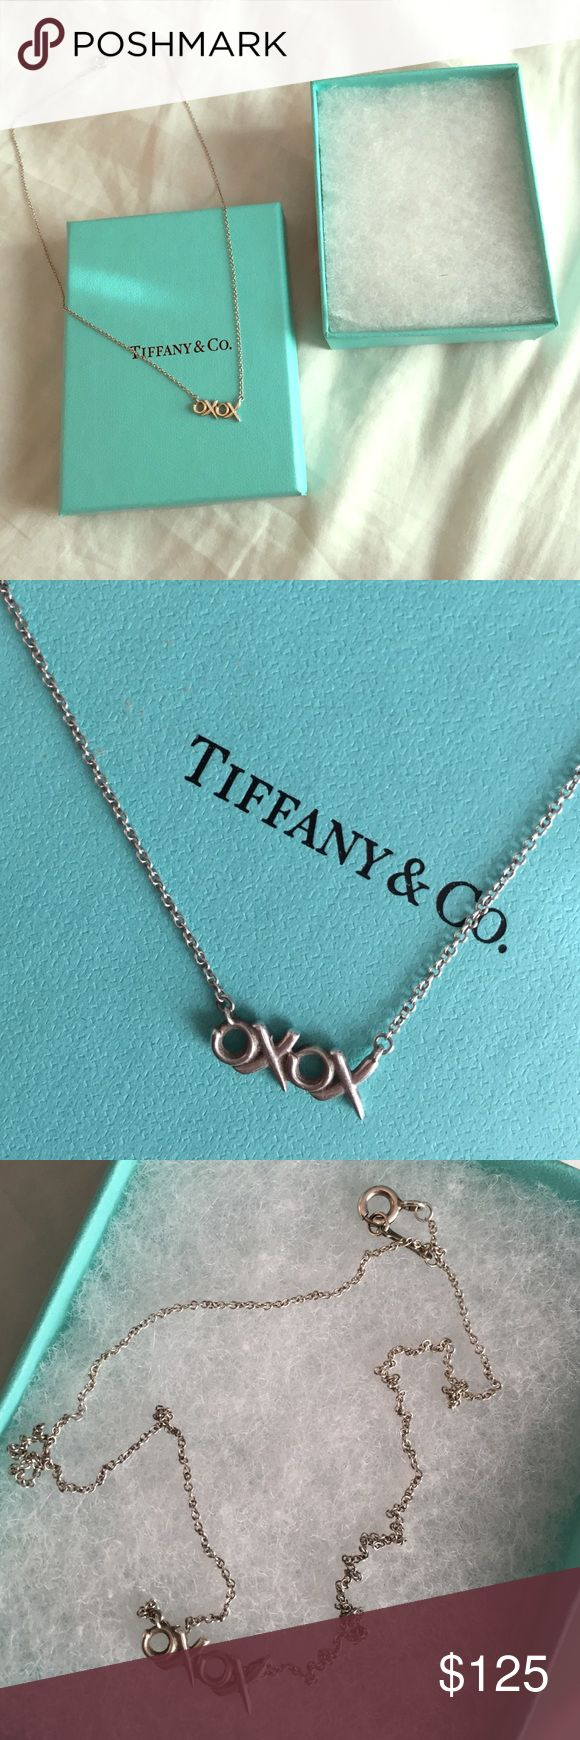 Tiffany and co necklace Beautiful anniversary, birthday, or special occasion gift for someone special in your life. Gently worn. Original packaging included Tiffany & Co. Jewelry Necklaces